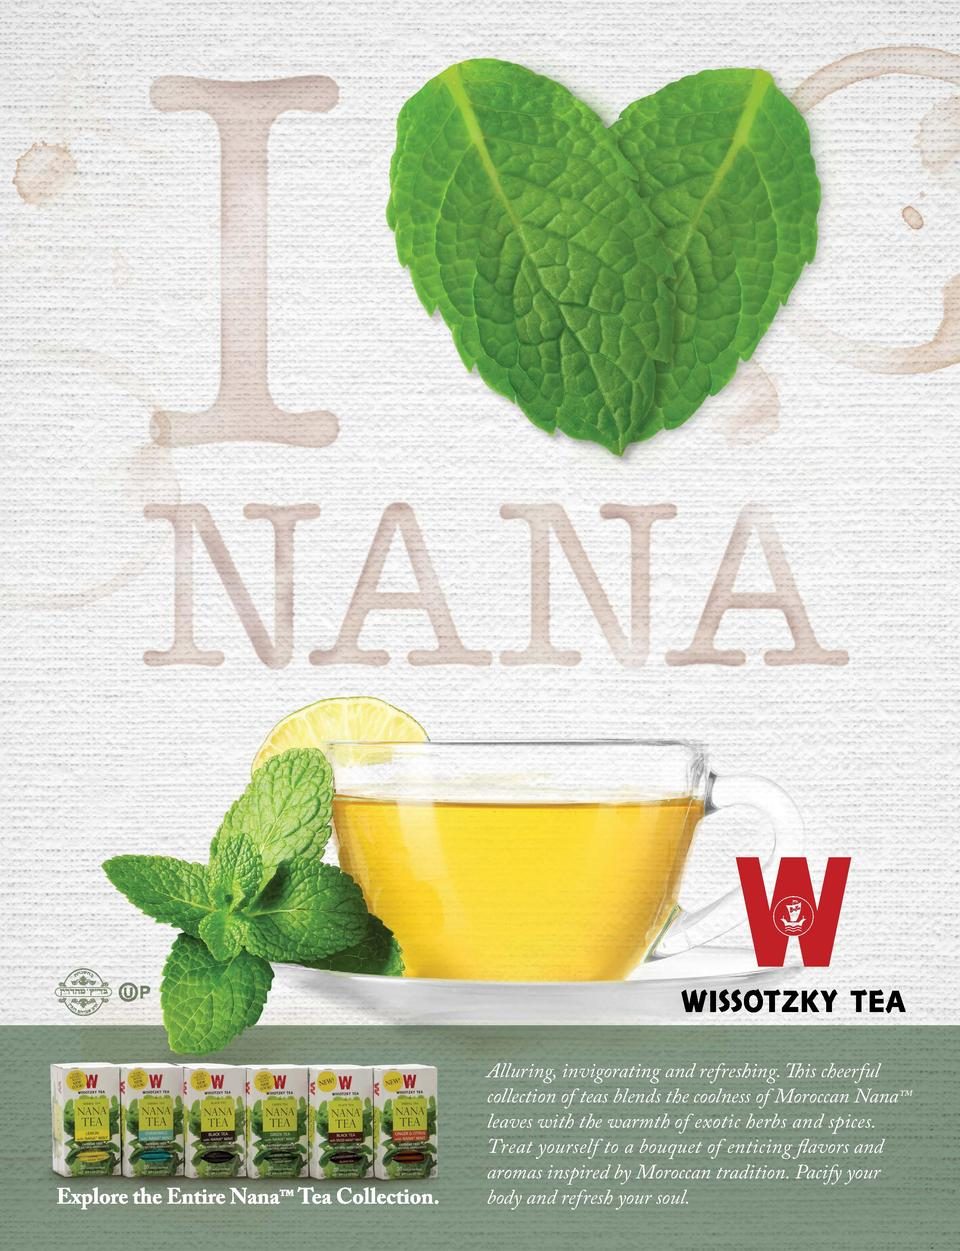 Alluring, invigorating and refreshing. This cheerful collection of teas blends the coolness of Moroccan Nana    leaves wit...